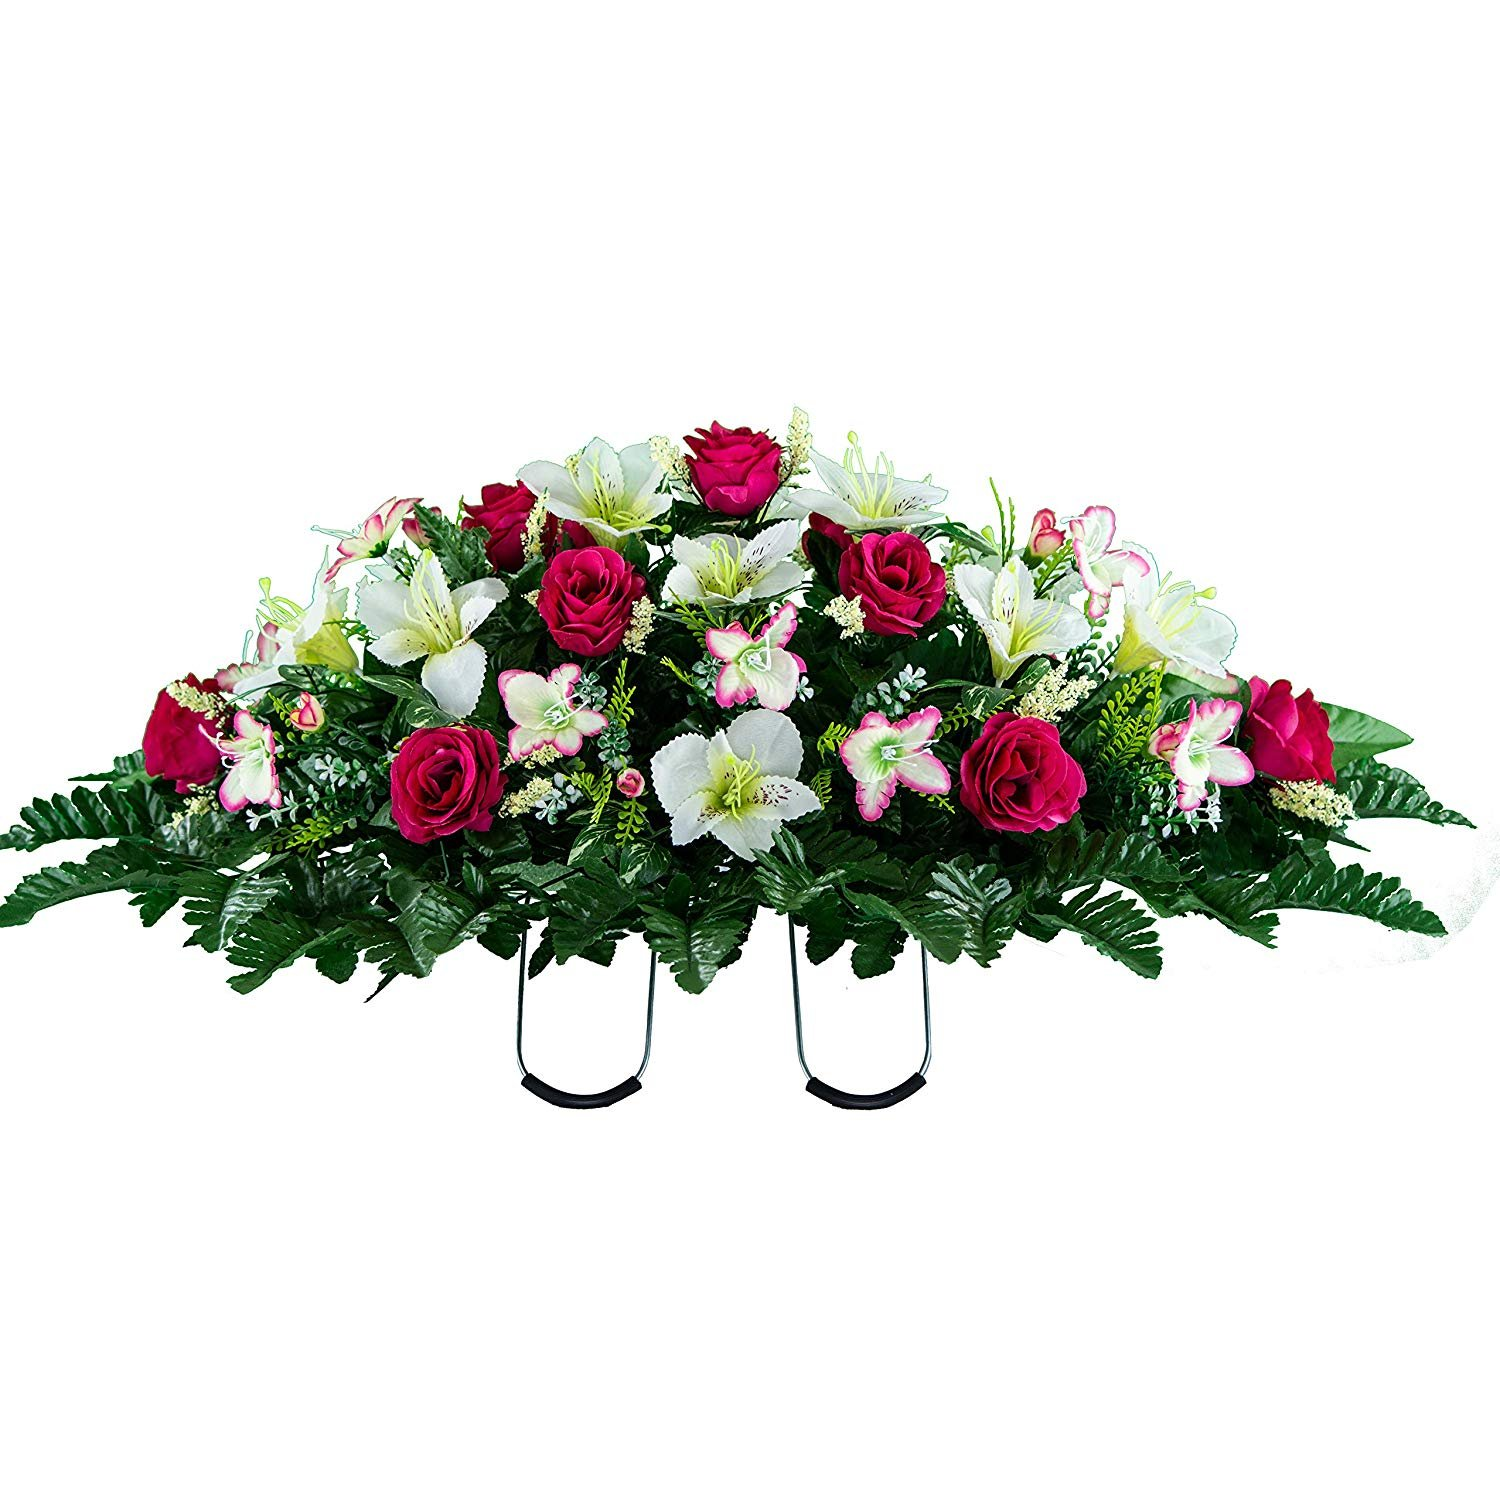 Sympathy Silks Artificial Cemetery Flowers Realistic Vibrant Roses Outdoor Grave Decorations Non Bleed Colors And Easy Fit Pink White Rose Saddle Walmart Com Walmart Com